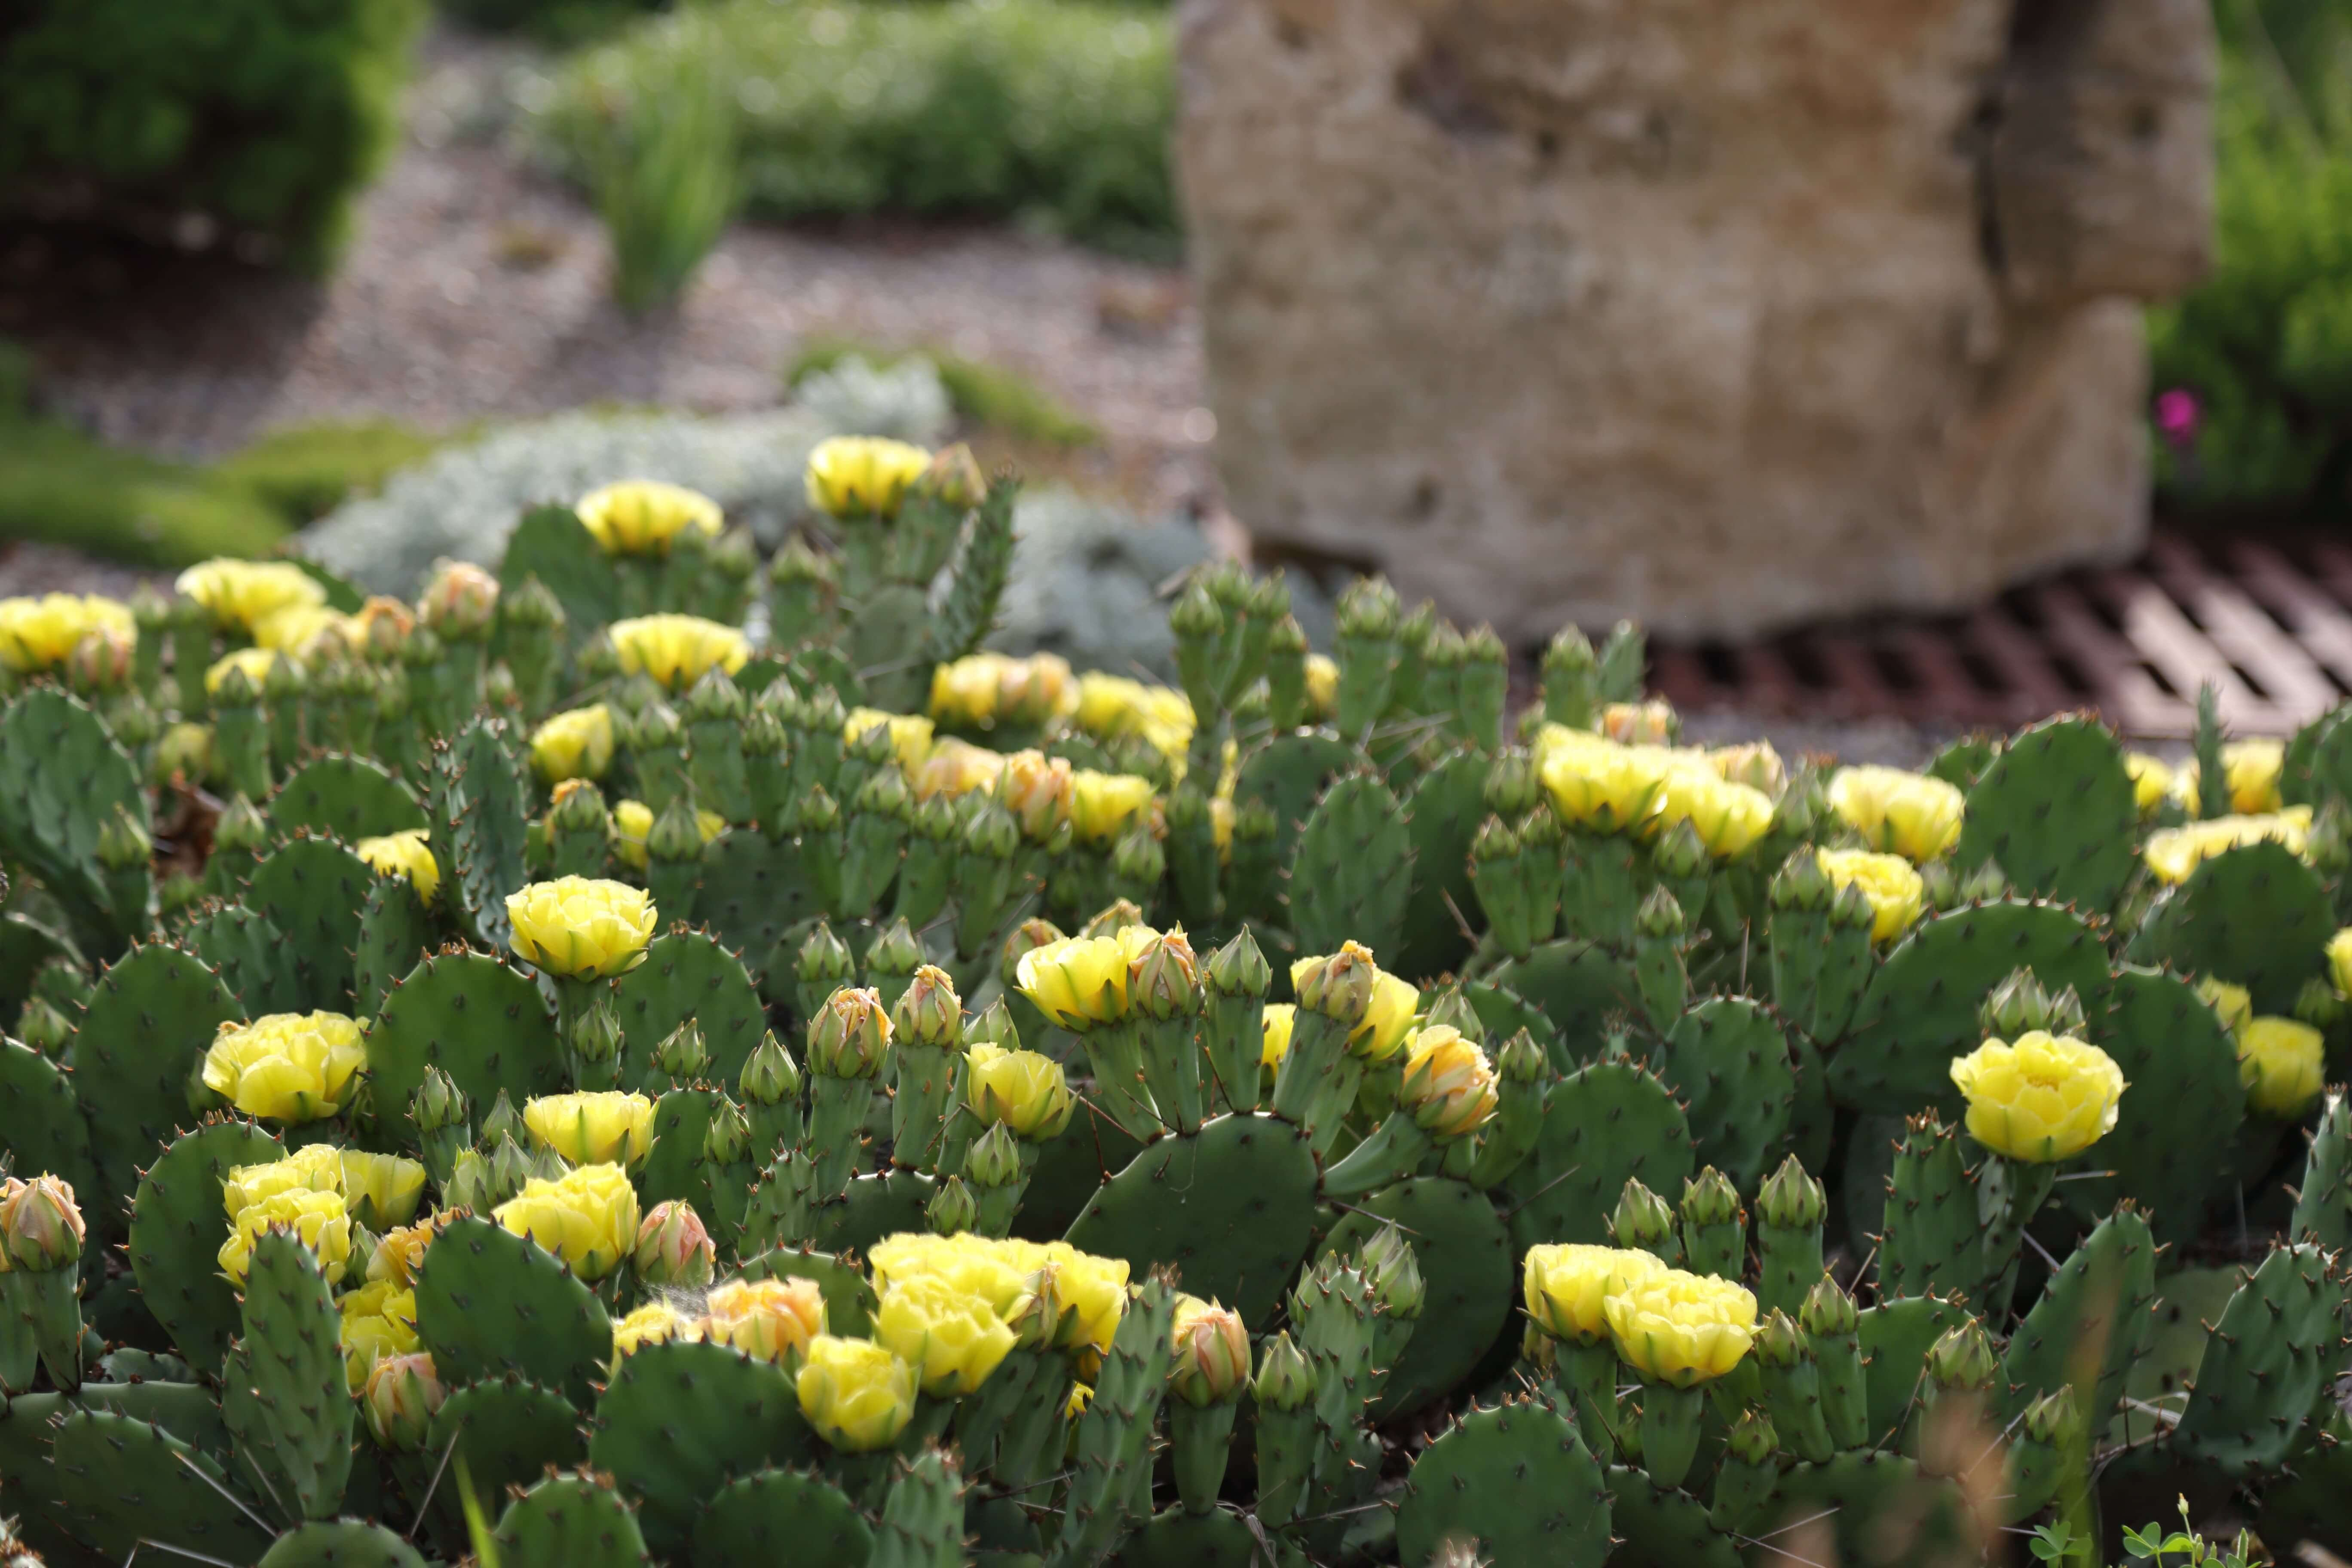 Opuntia humifusa (eastern prickly pear) flowering in the Rutledge Conifer Garden, June 7. Photo by Kelly Norris.